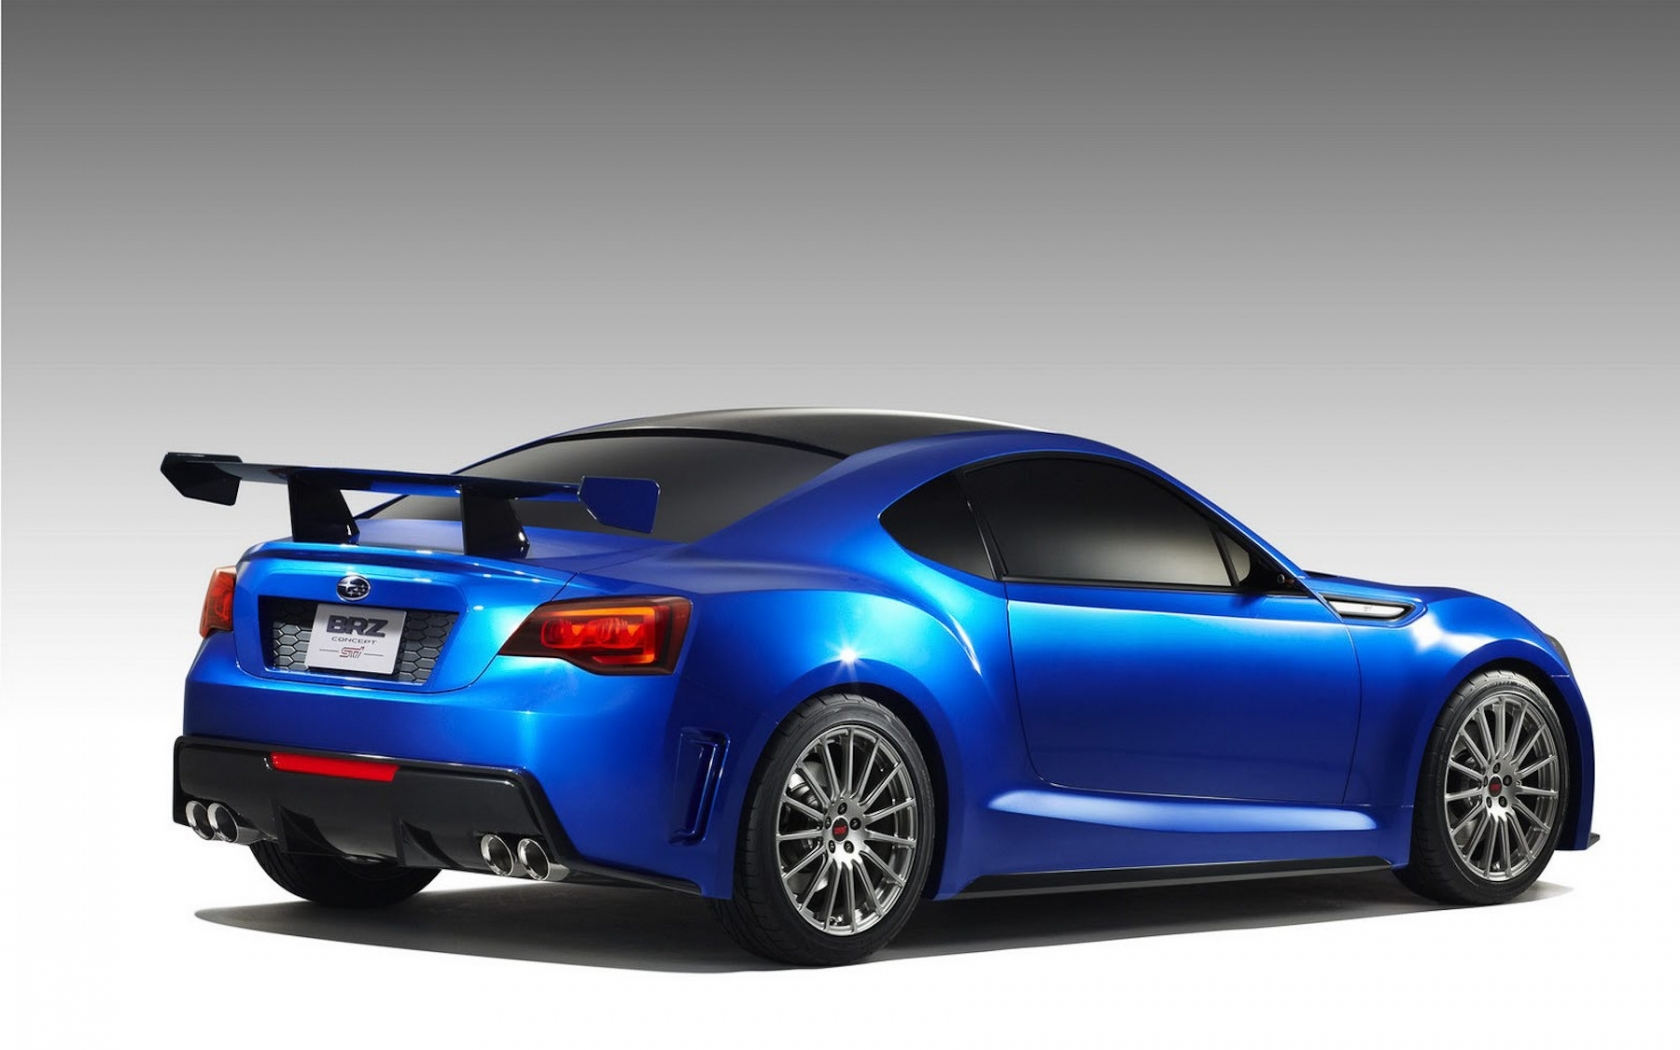 44066 download wallpaper Transport, Auto, Subaru screensavers and pictures for free